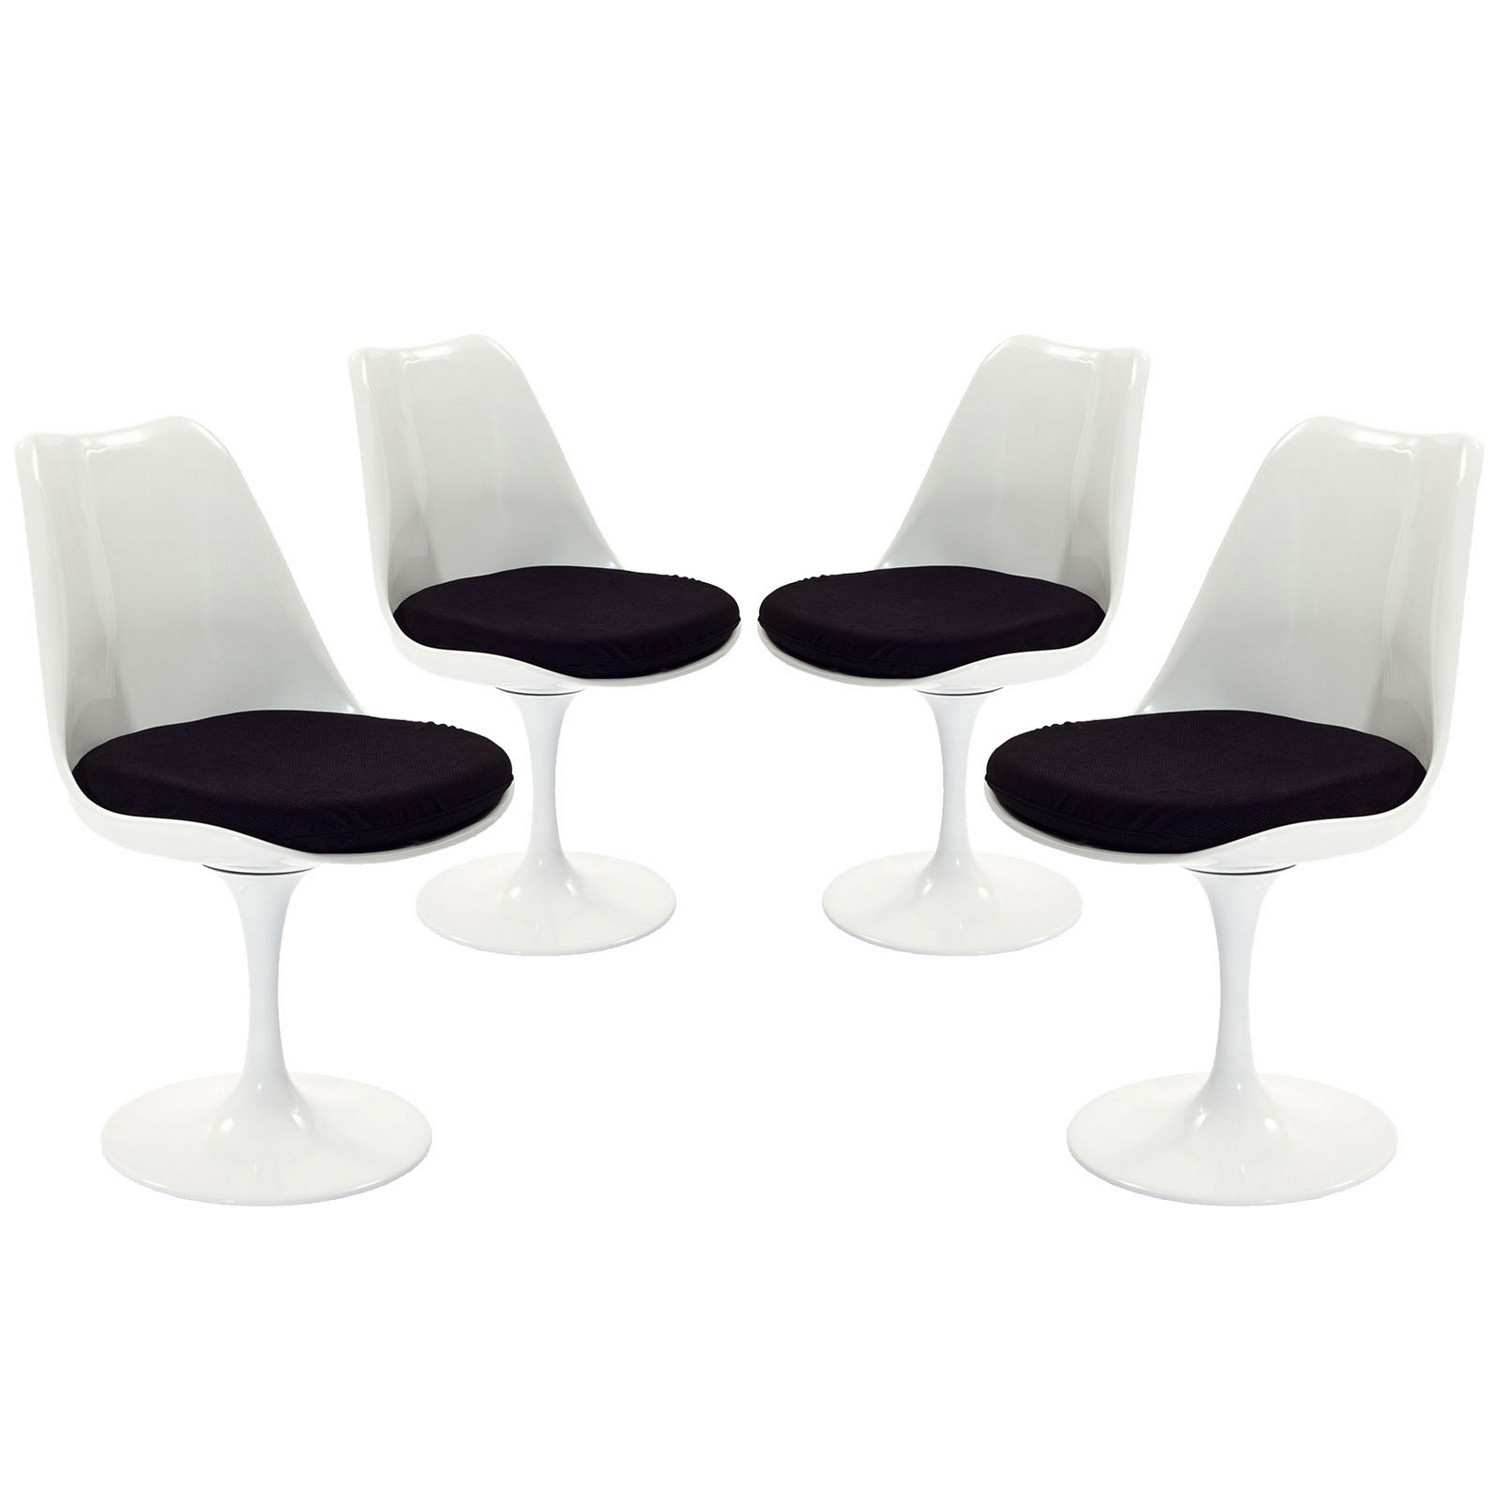 Modway Lippa Dining Side Chair Fabric Set of 4 - Black